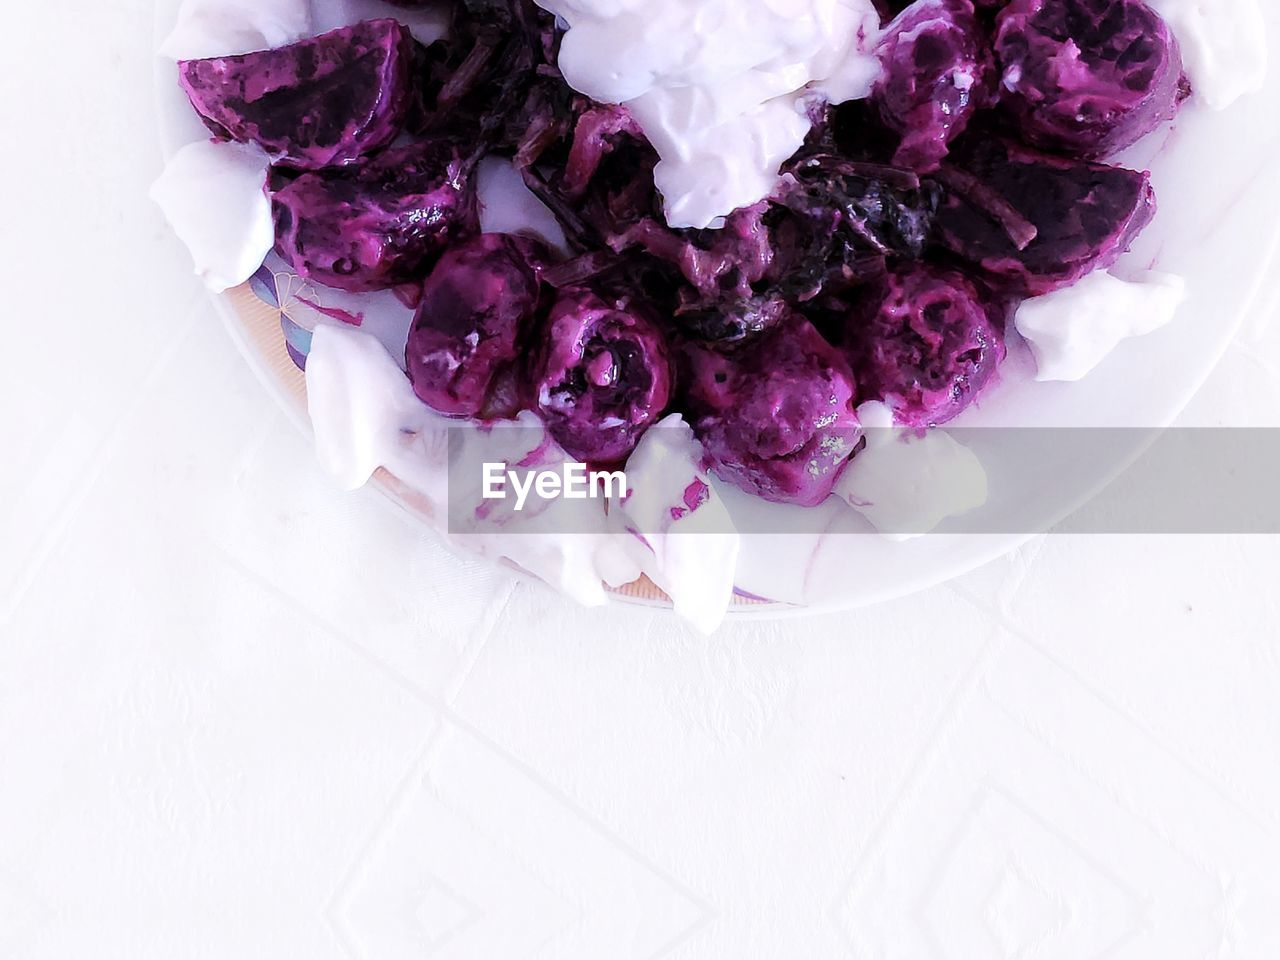 high angle view, freshness, indoors, purple, food and drink, food, white color, wellbeing, healthy eating, no people, still life, table, close-up, nature, plant, studio shot, flower, white background, directly above, plate, vegetarian food